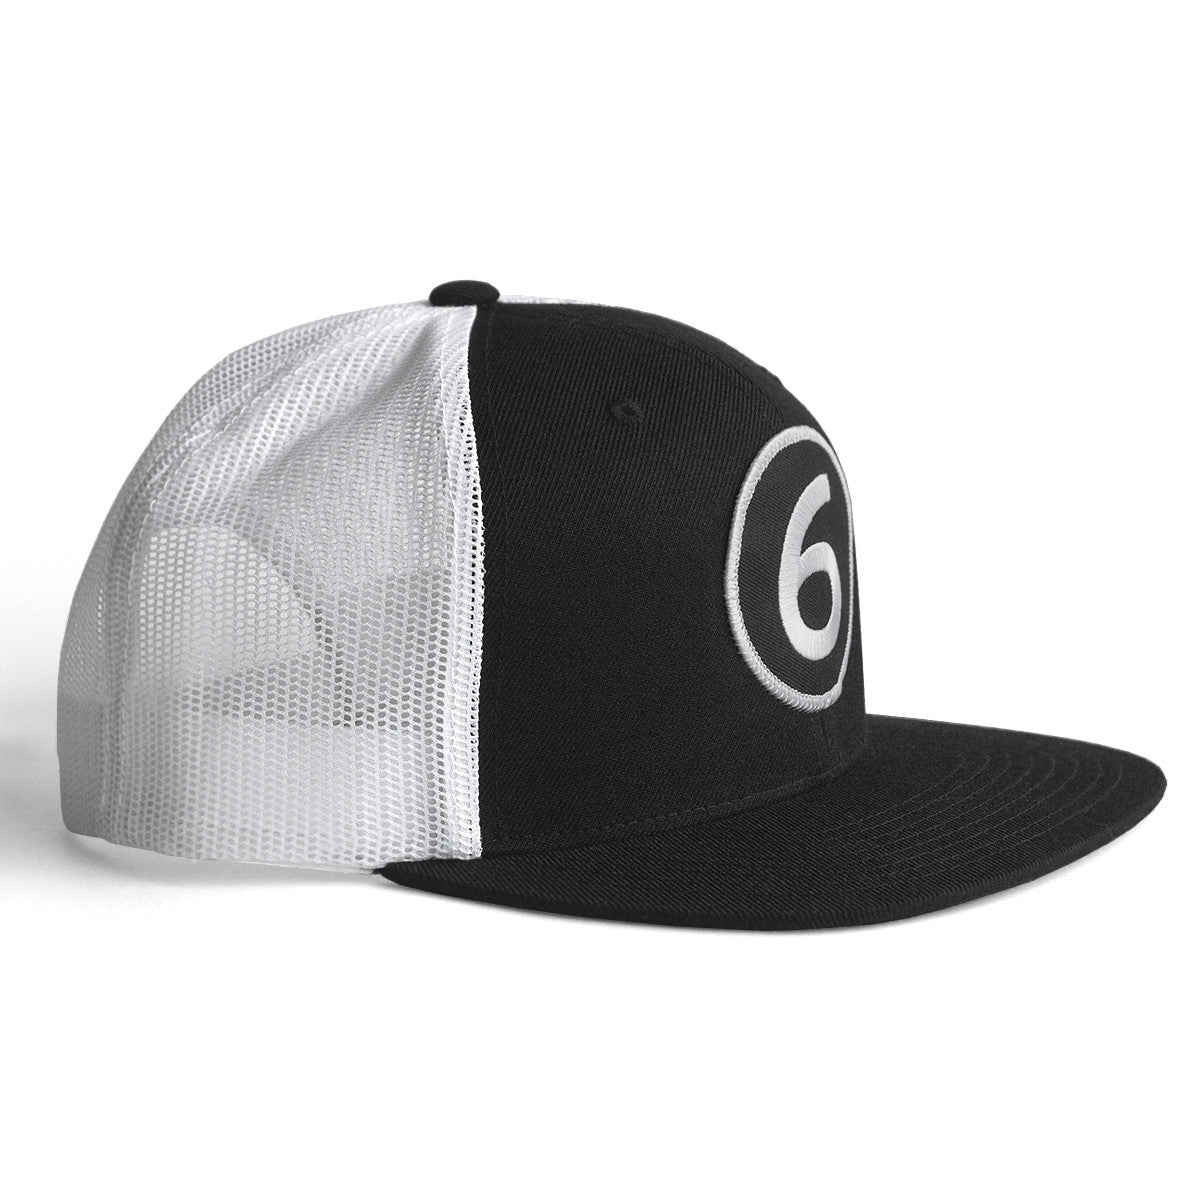 SIX Hat (BLACK)